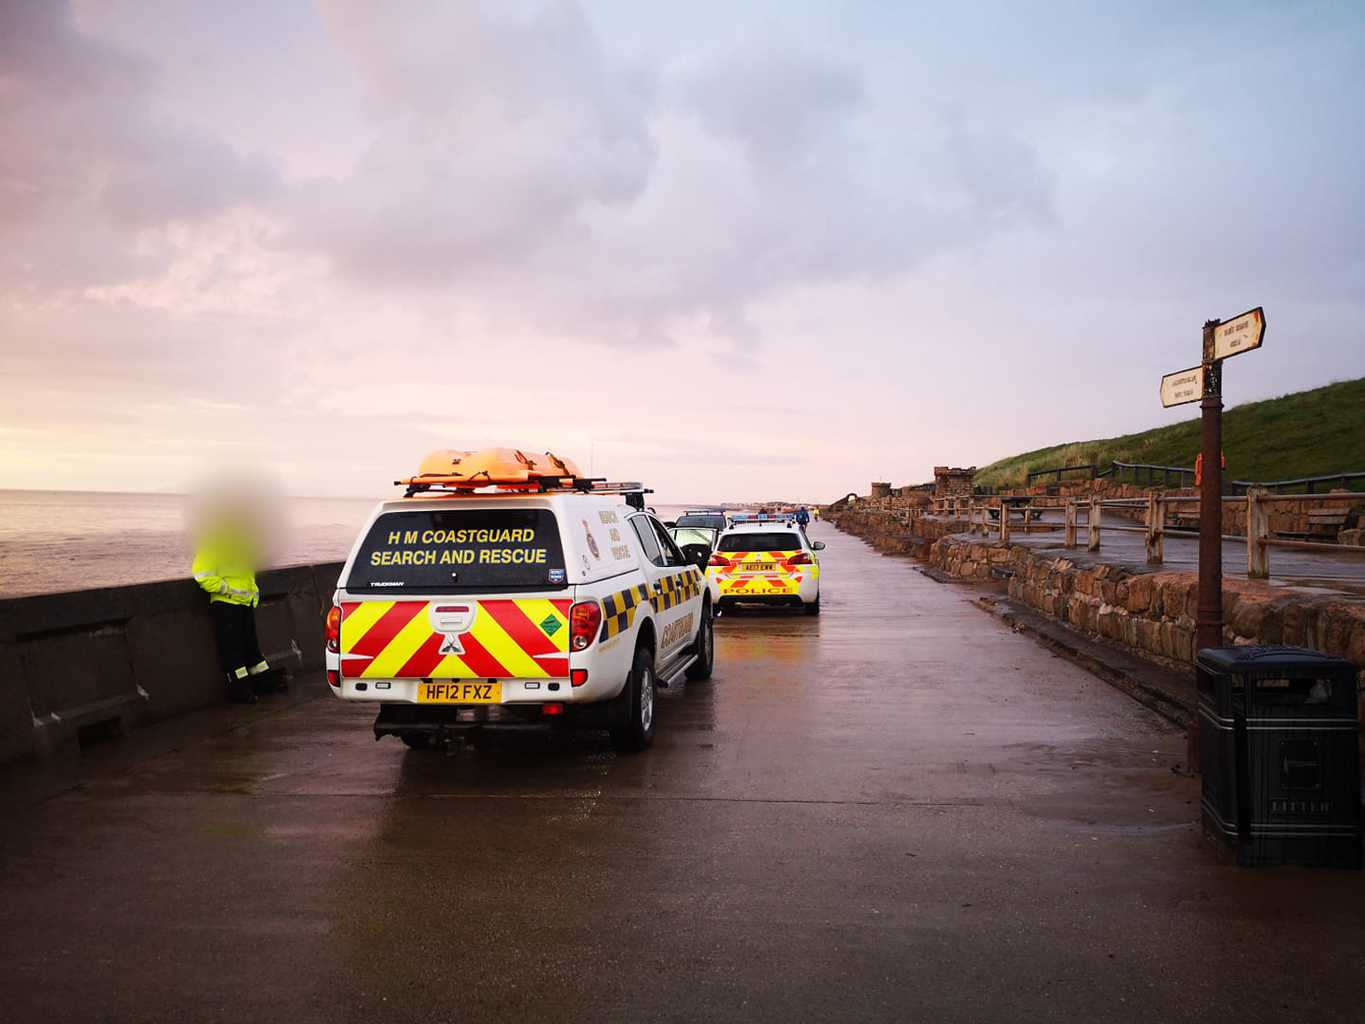 HM Coastguard Lytham called out for the THIRD TIME today!